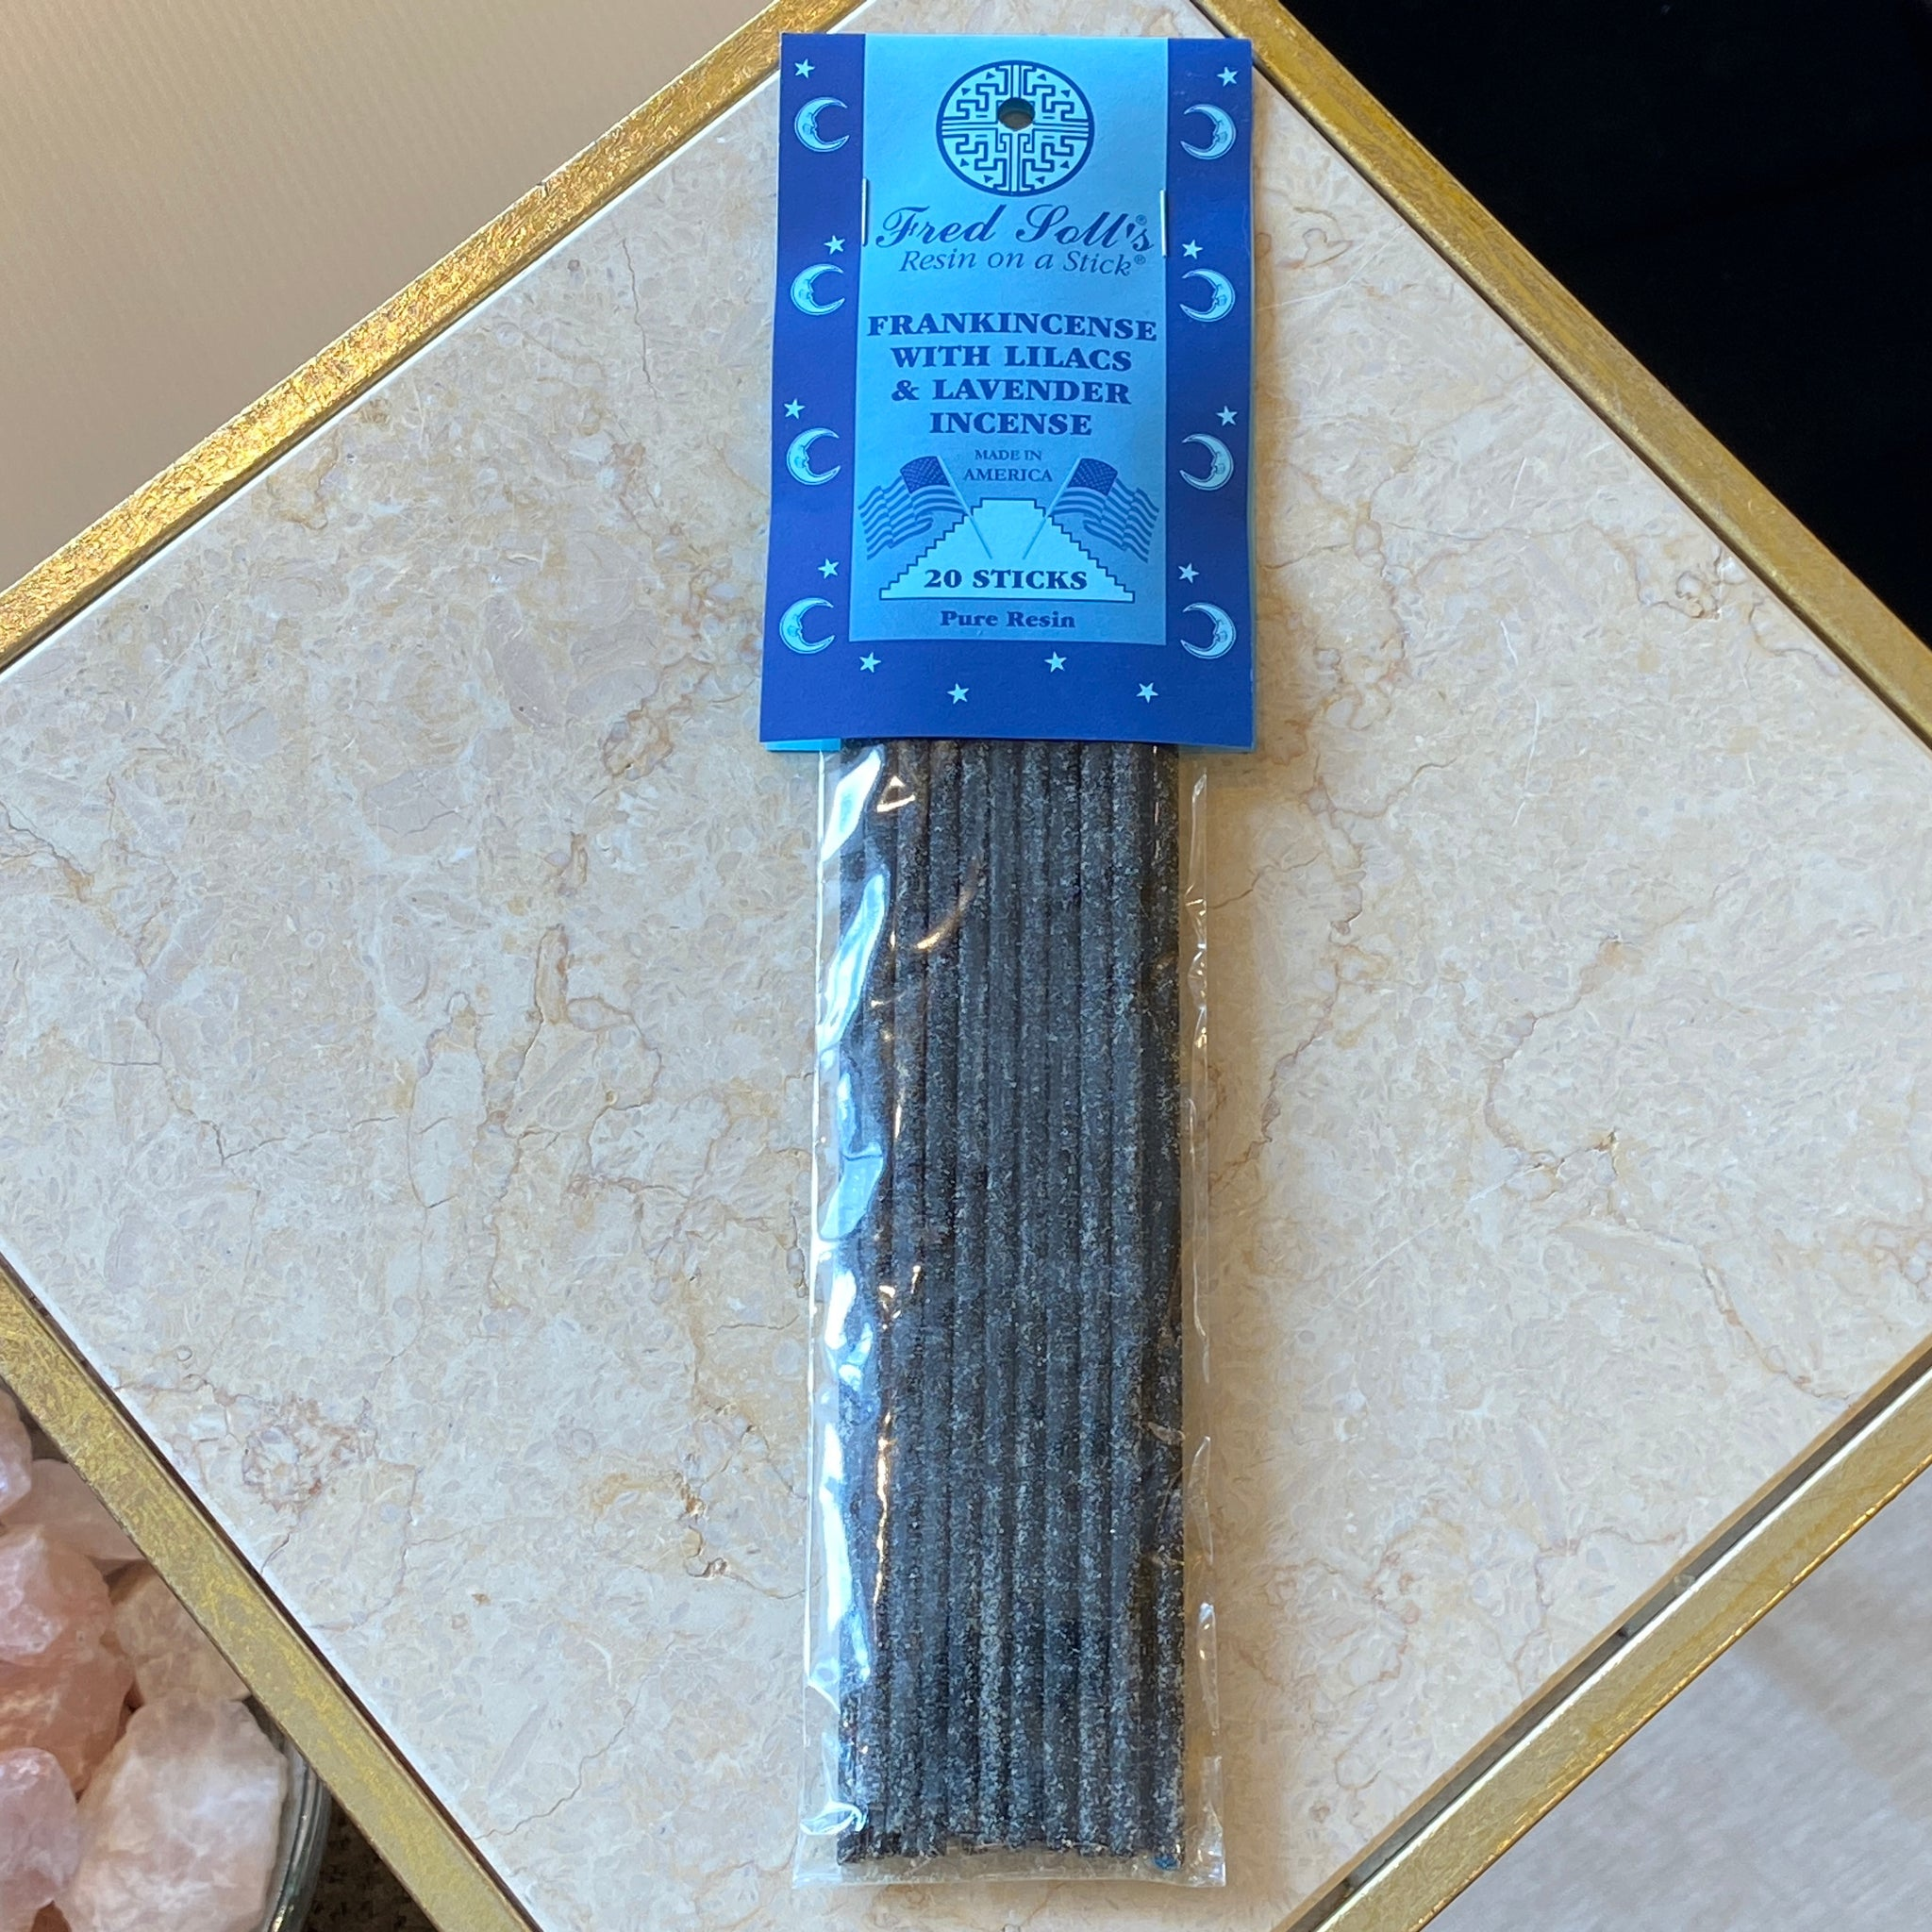 Frankincense w/ Lilacs & Lavender Incense (20 Sticks)